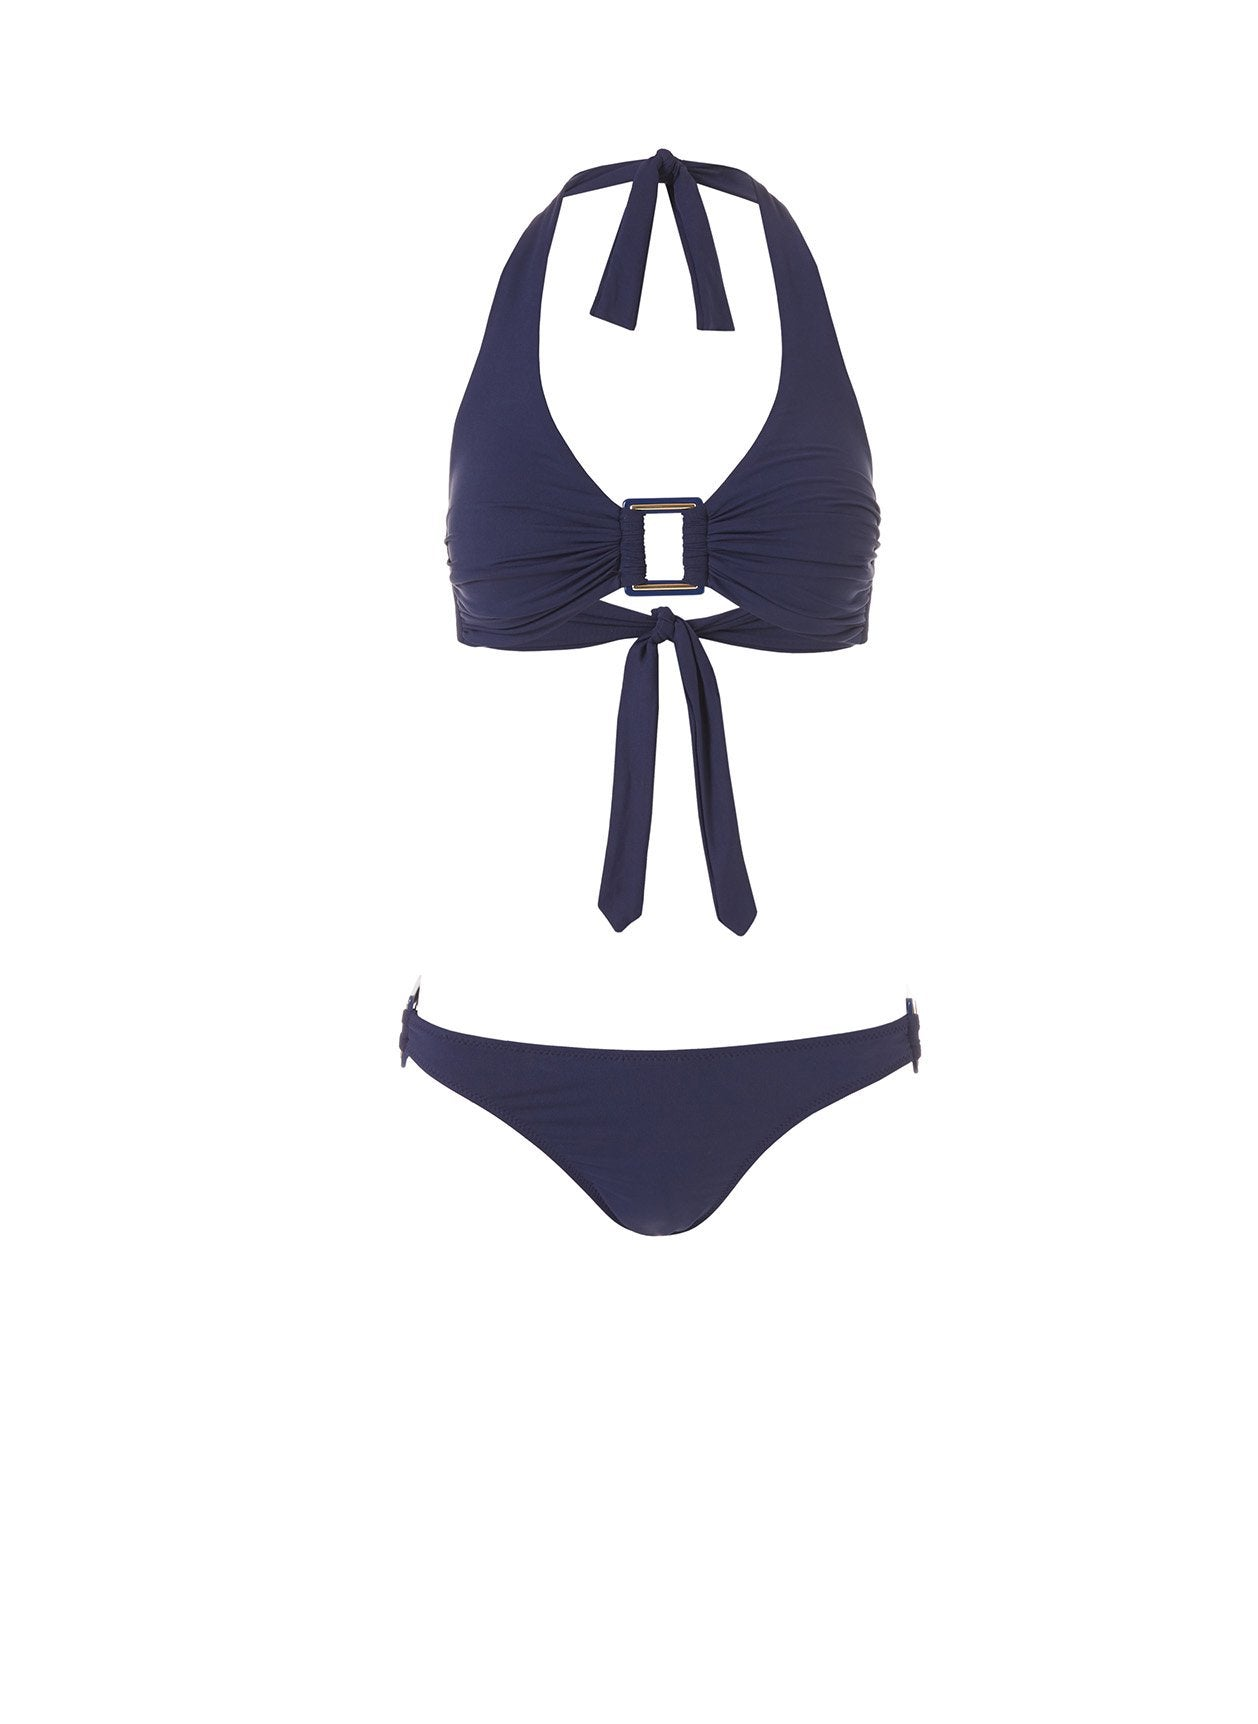 Paris Navy Rectangle Trim Halterneck Bikini Bikini 2020